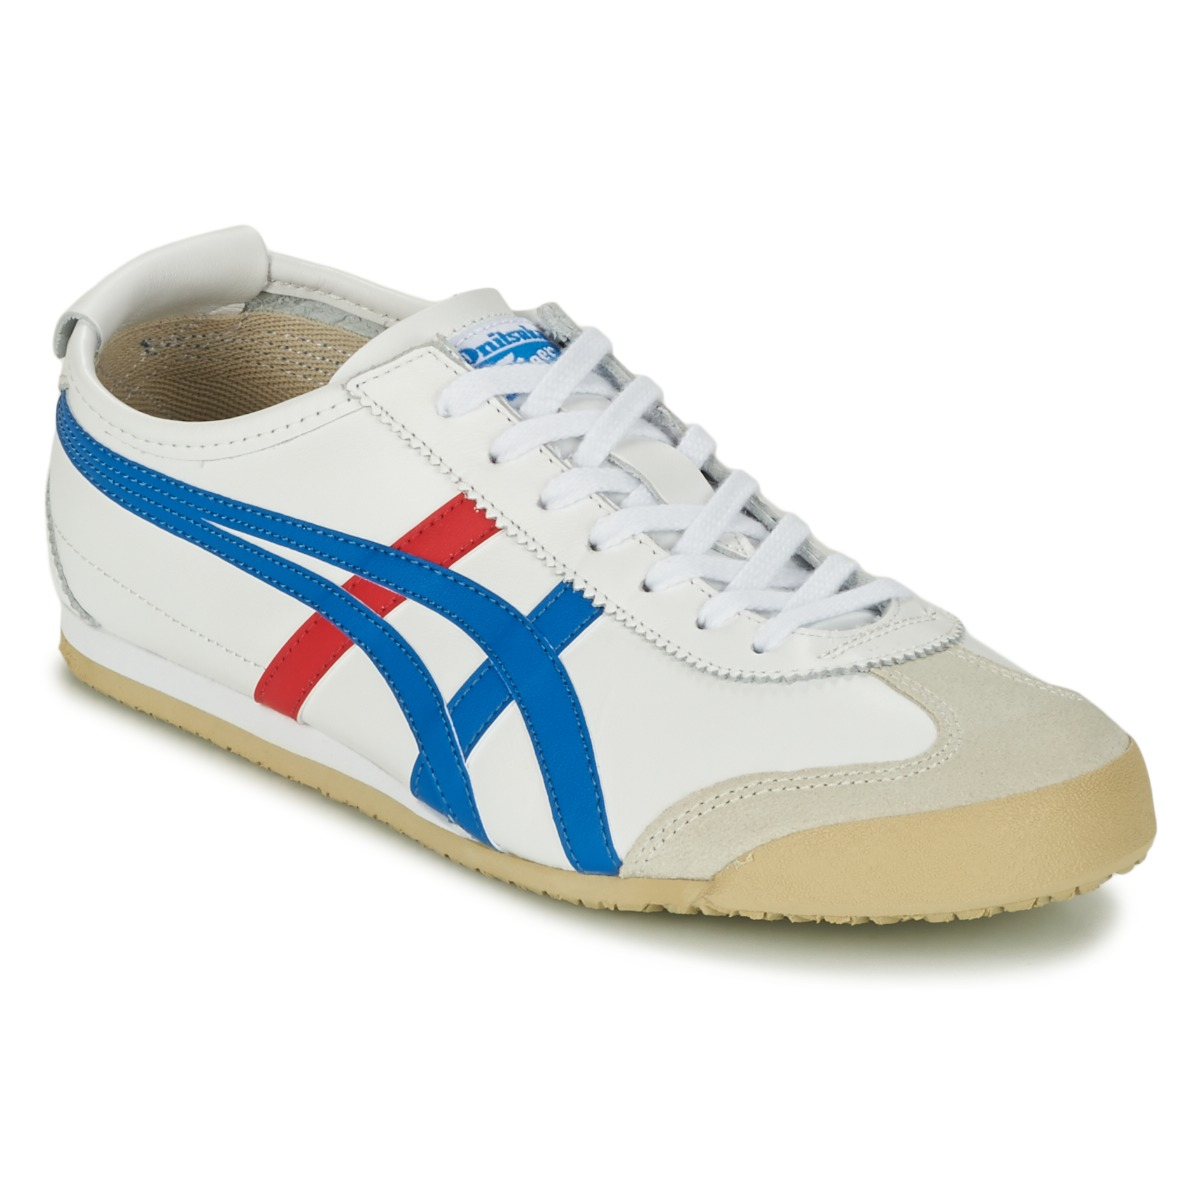 Onitsuka Tiger MEXICO 66 White / Blue / Red